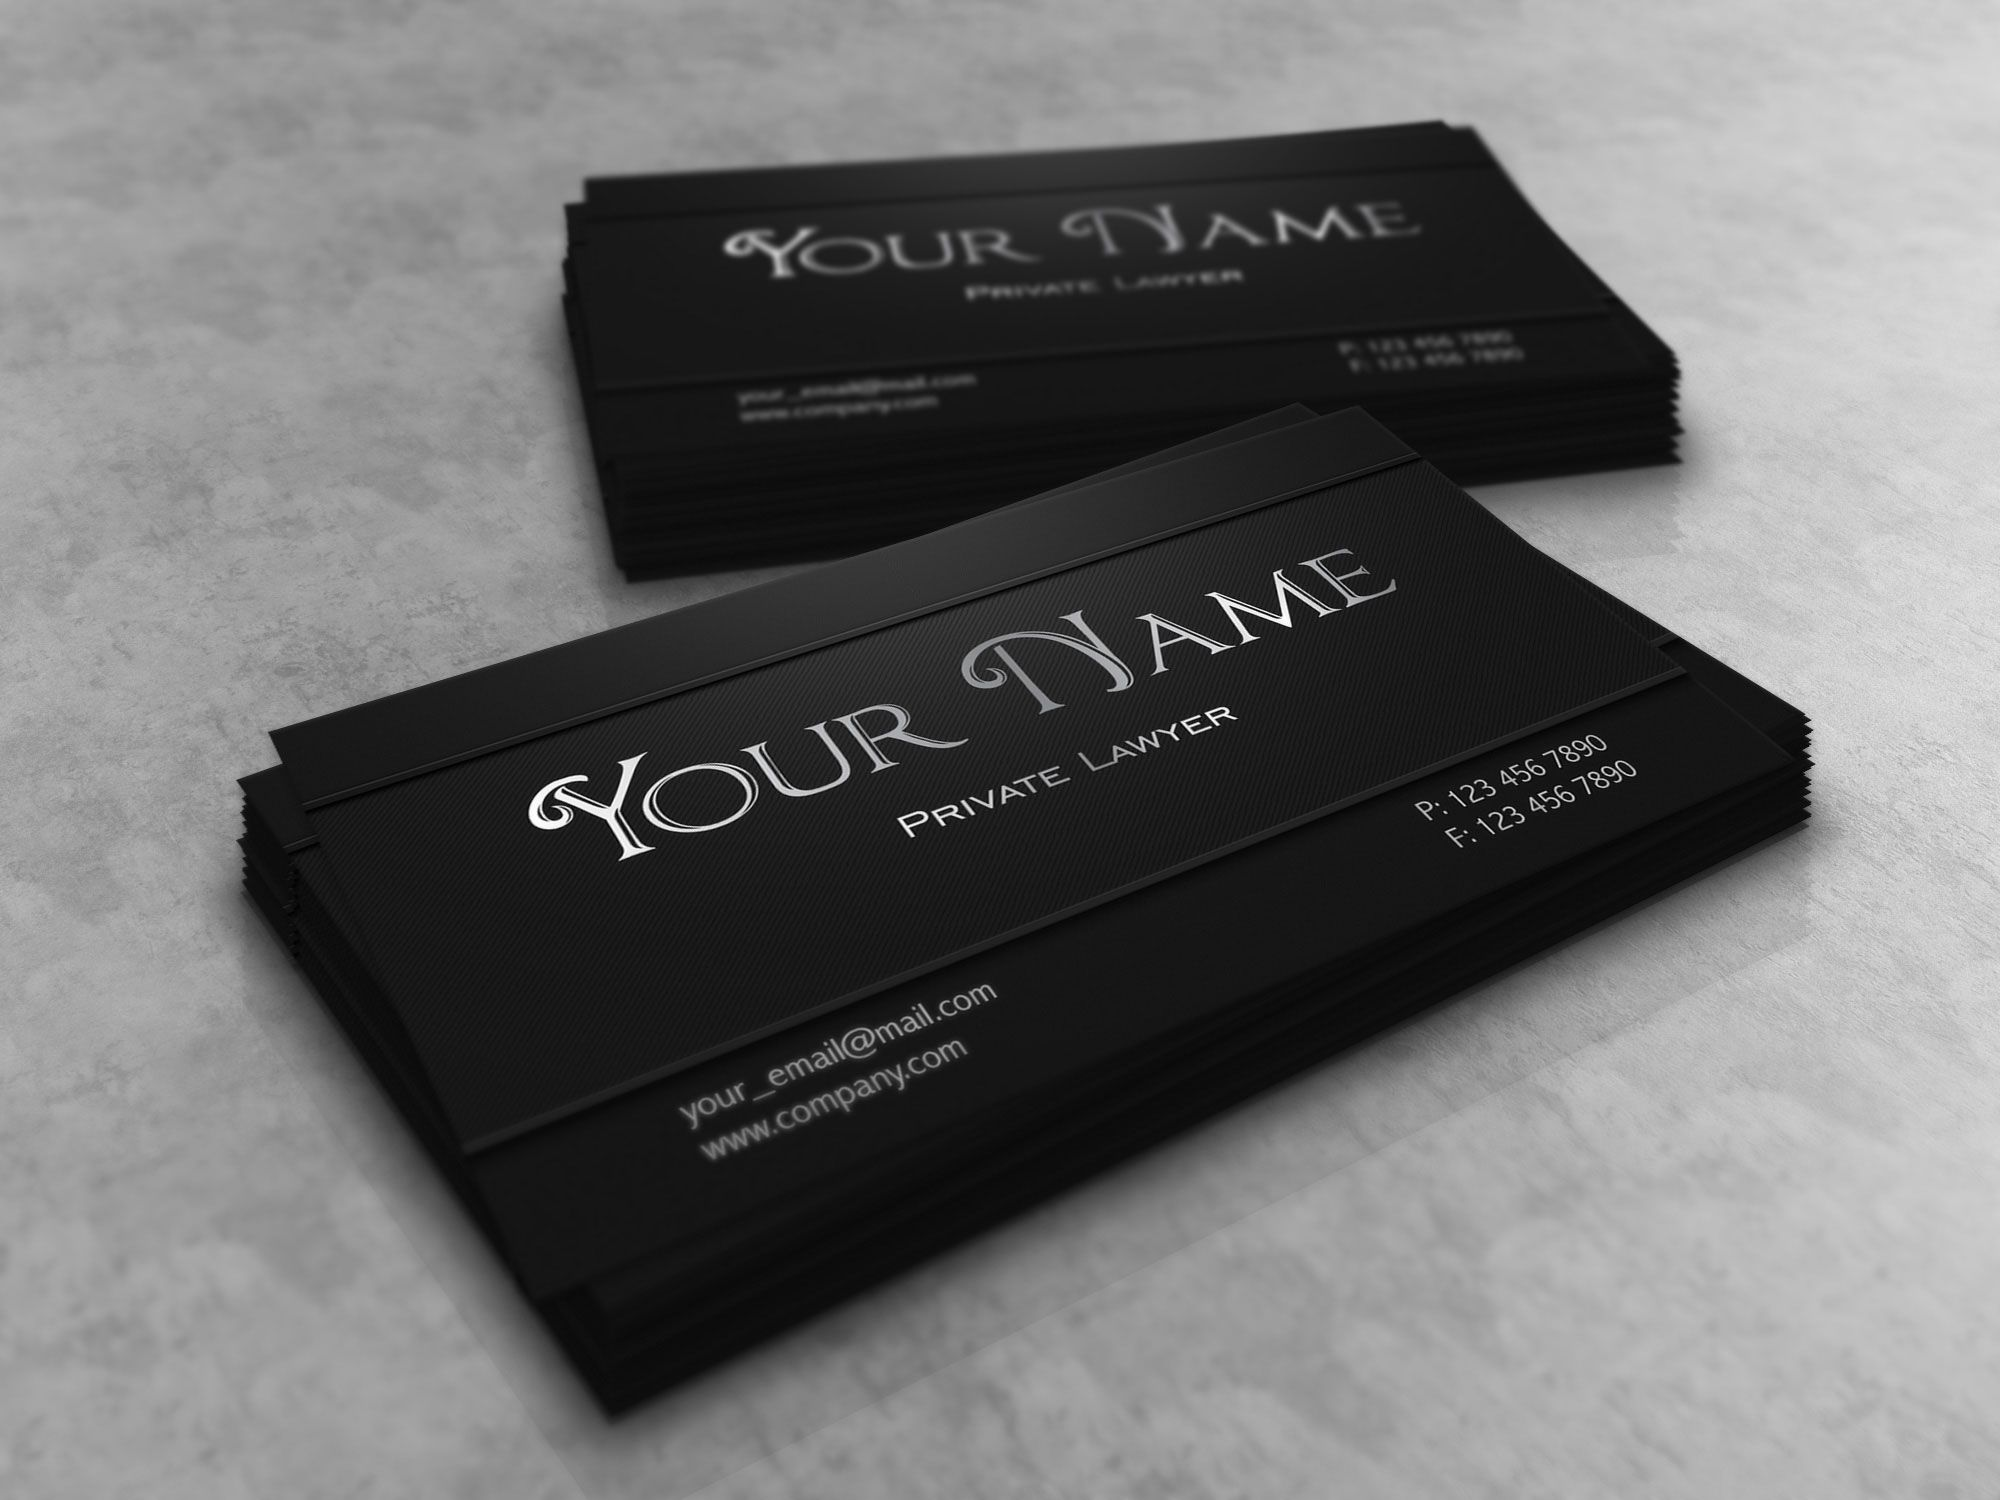 Dark Lawyer Business Card Template More At Designresourcesio - Lawyer business card template